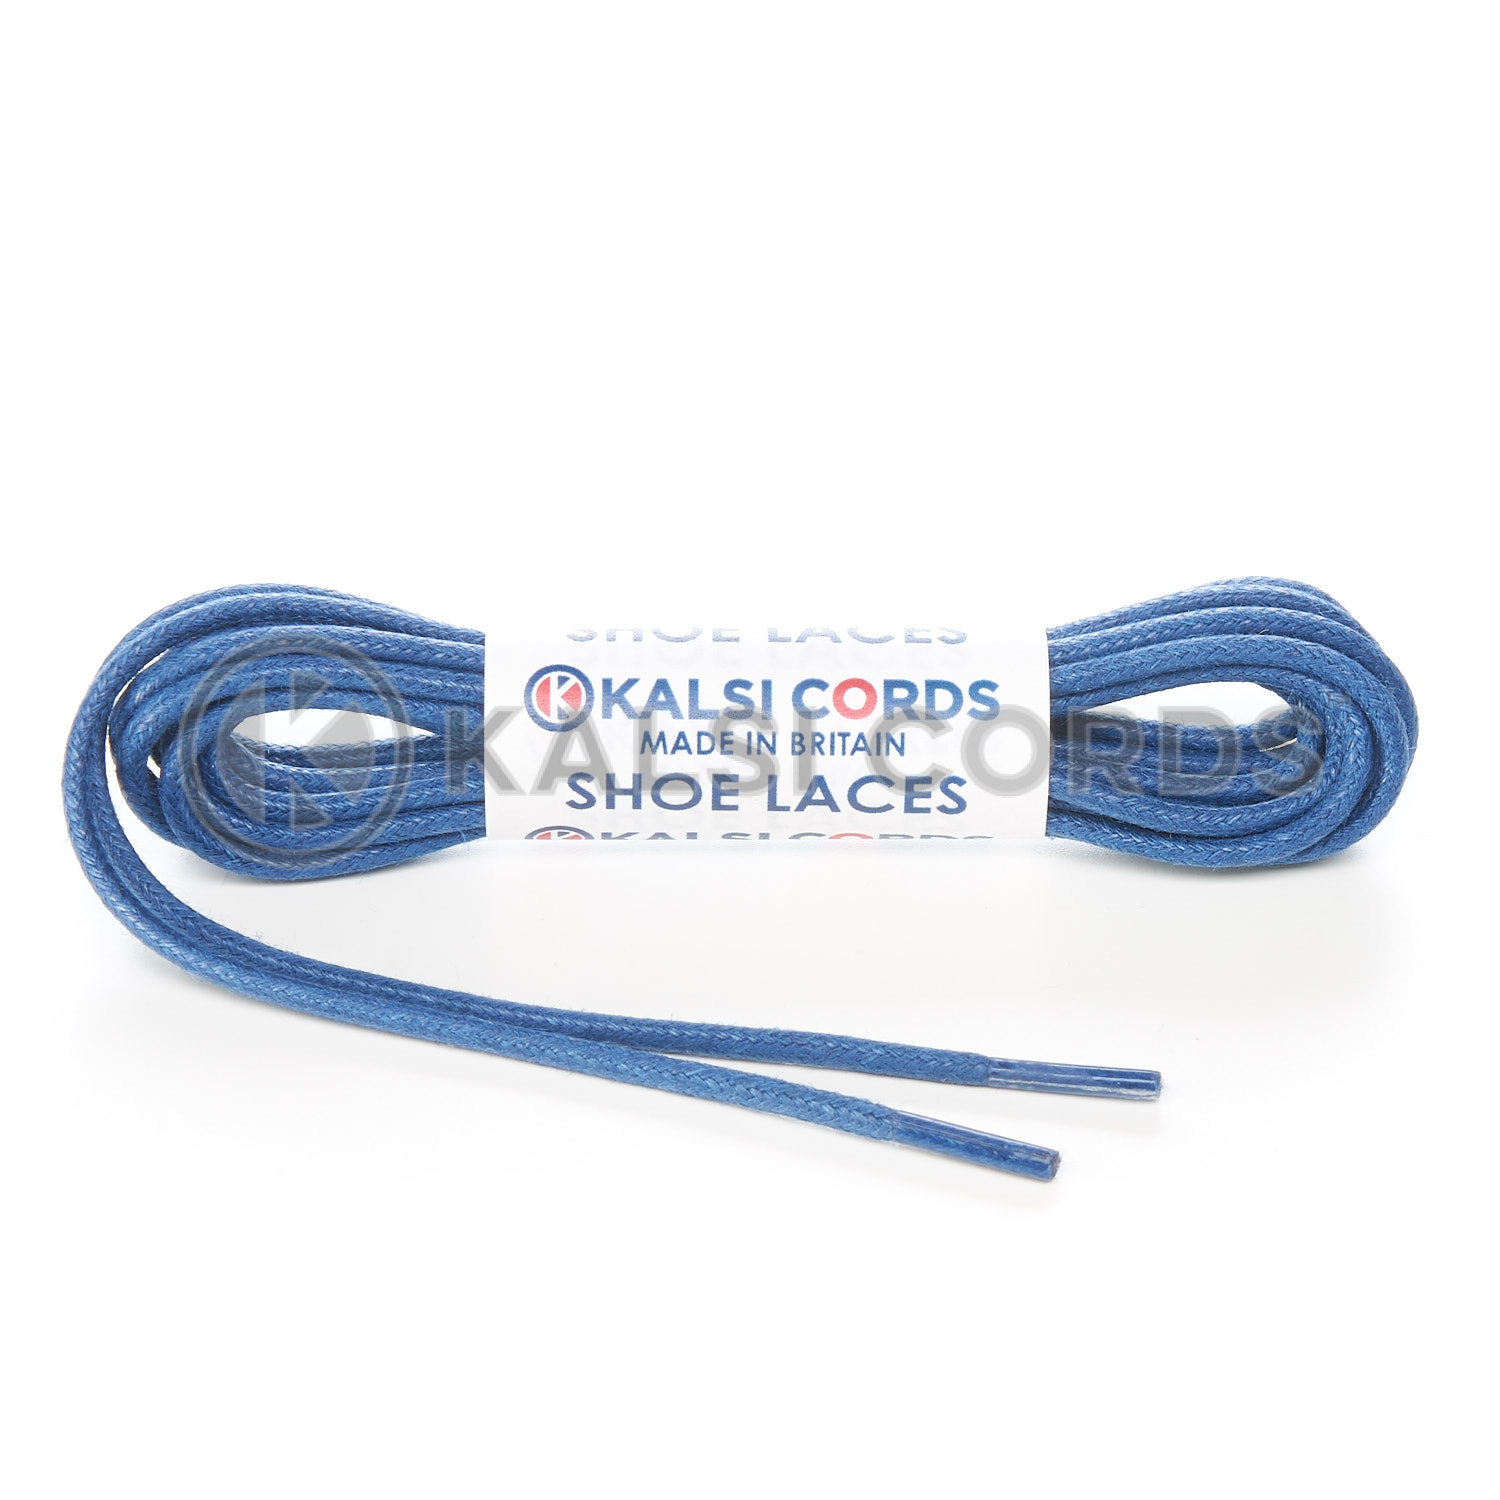 TE428 2mm Thin Fine Round Waxed Shoe Laces Cotton Navy Kalsi Cords